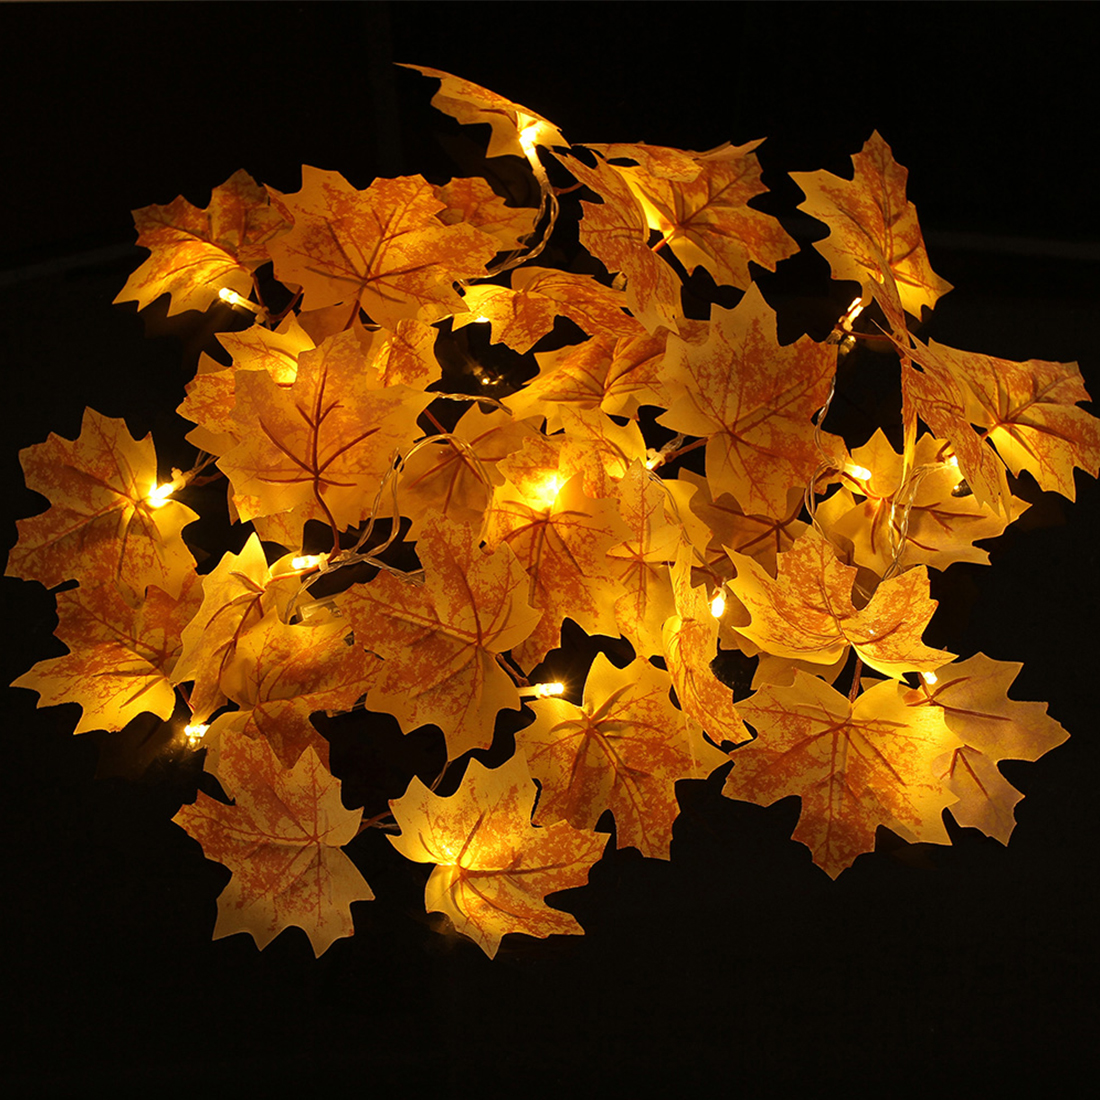 New Maple Leaves Fairy Light Mixed Color Orange Yellow Leaf Autumn String Lights 20LED Fall Indoor Decoration Battery Operated